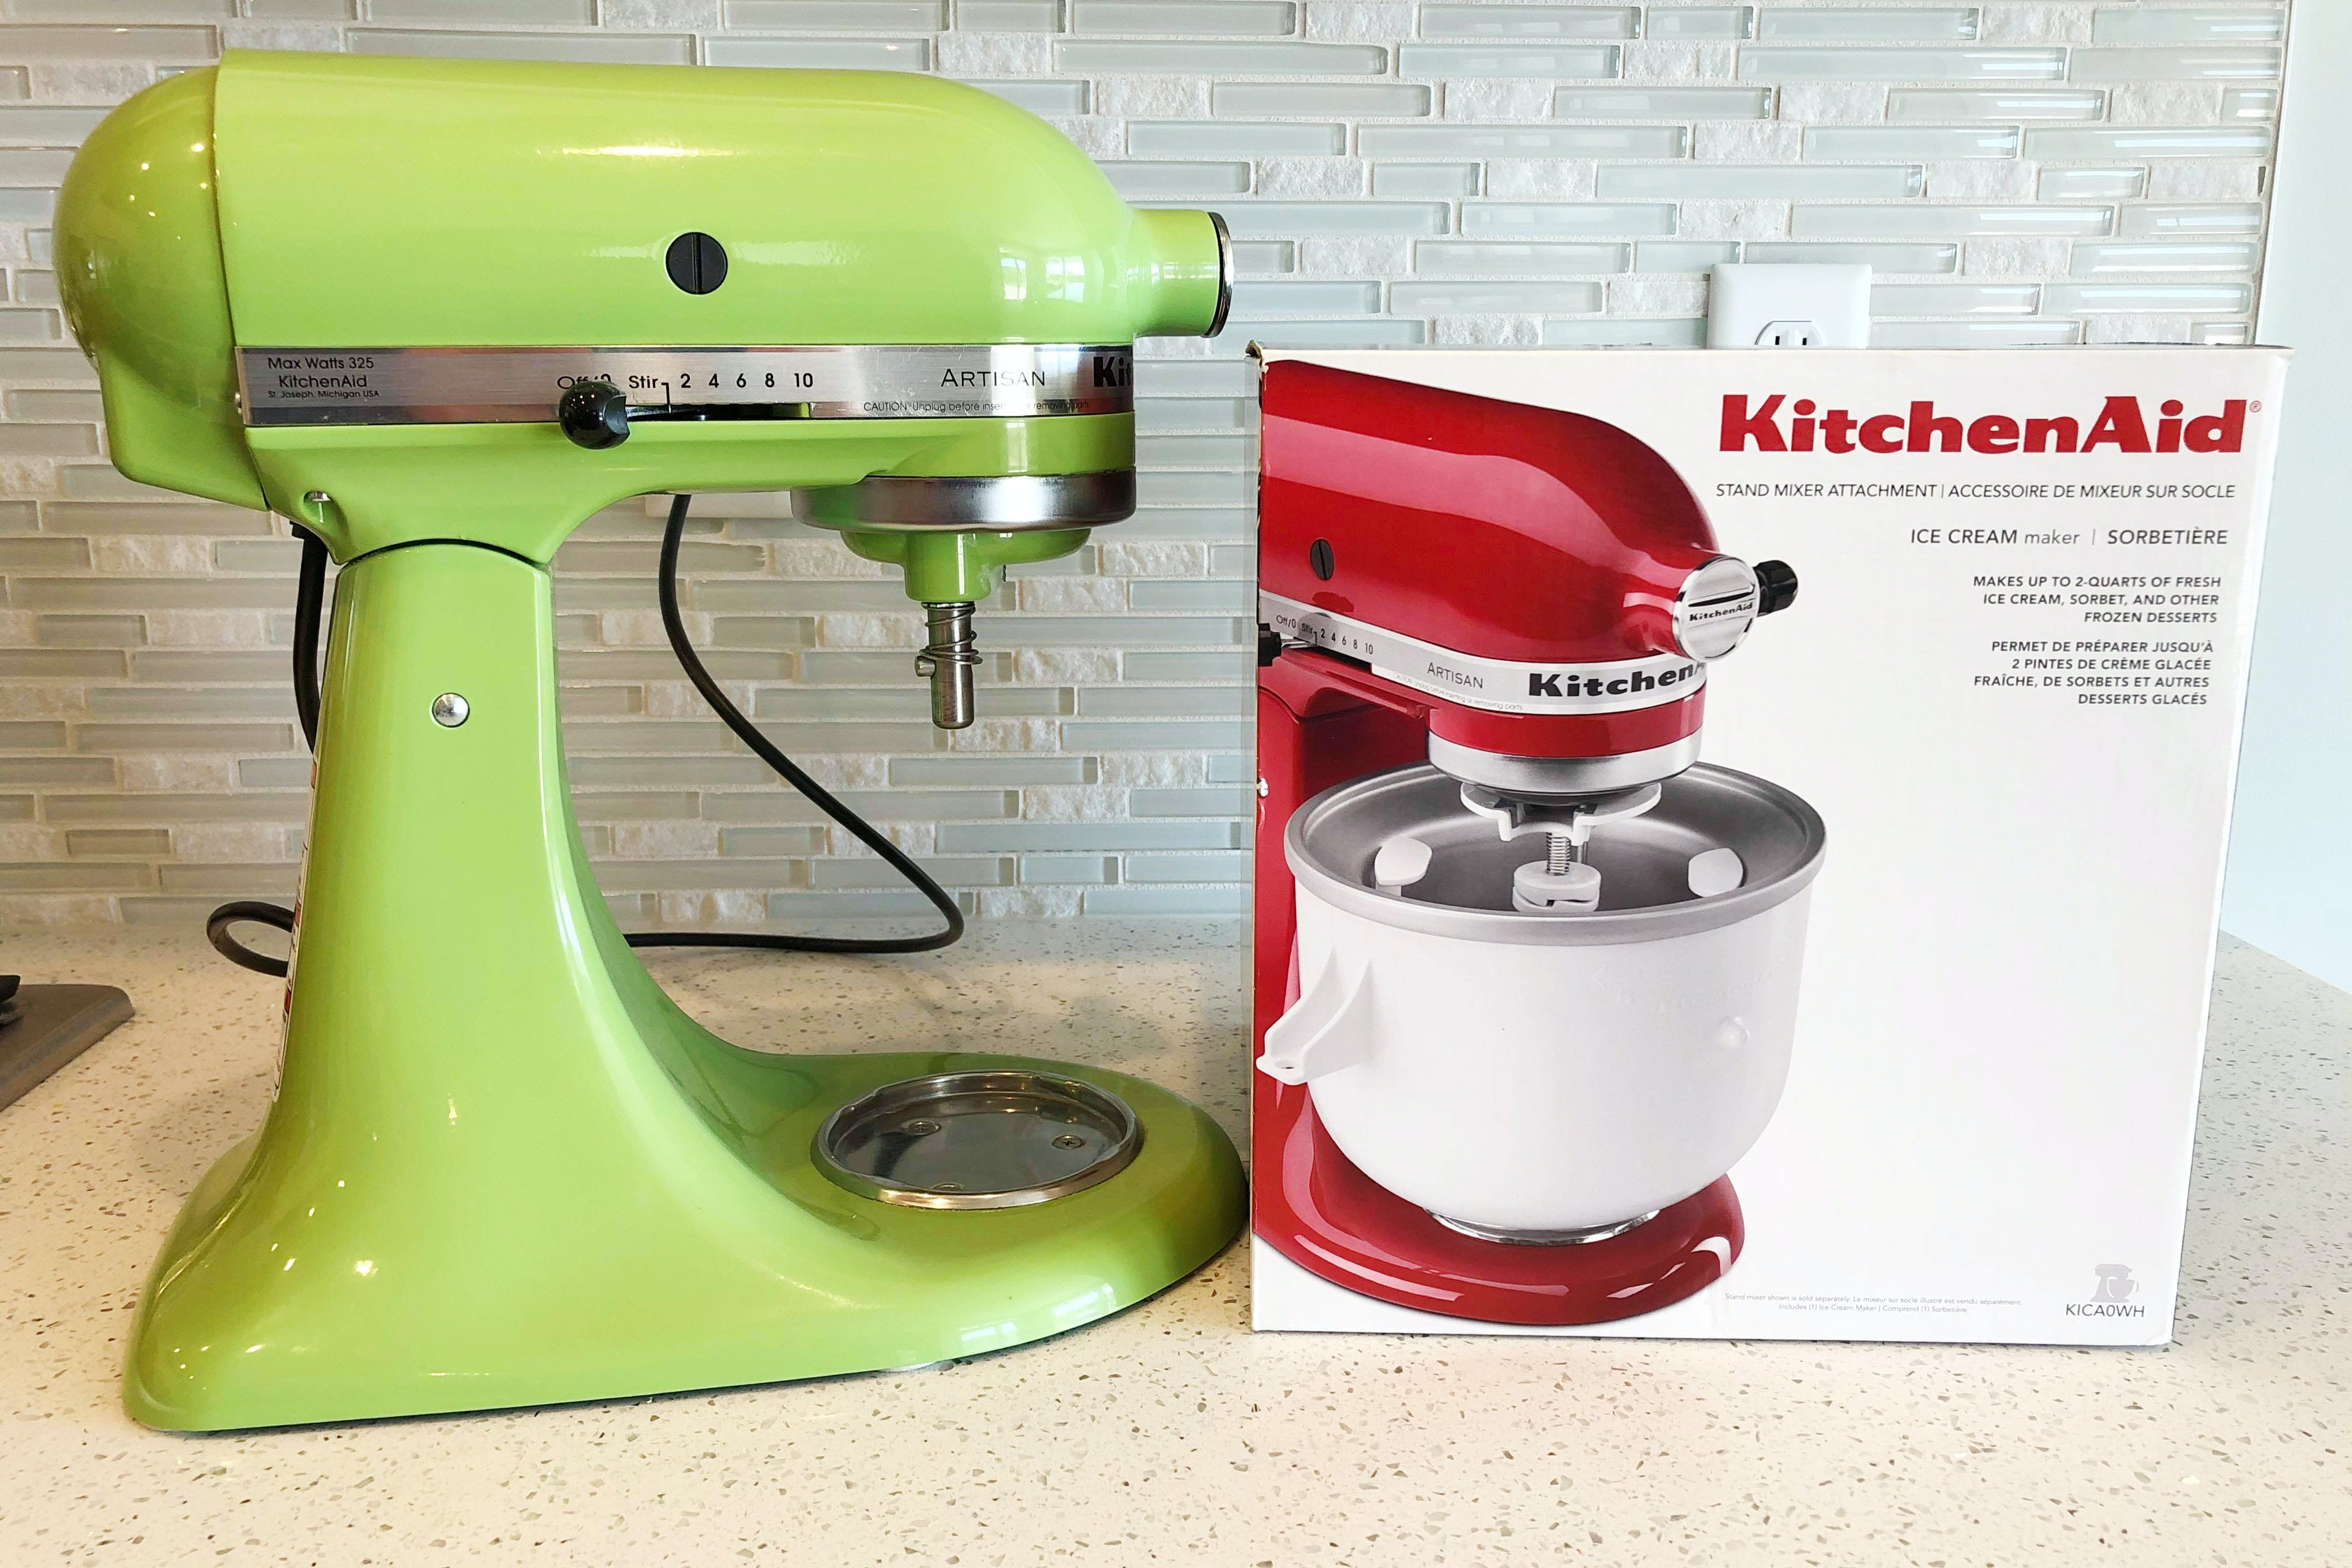 How To Save On A Kitchenaid Ice Cream Maker The Krazy Coupon Lady